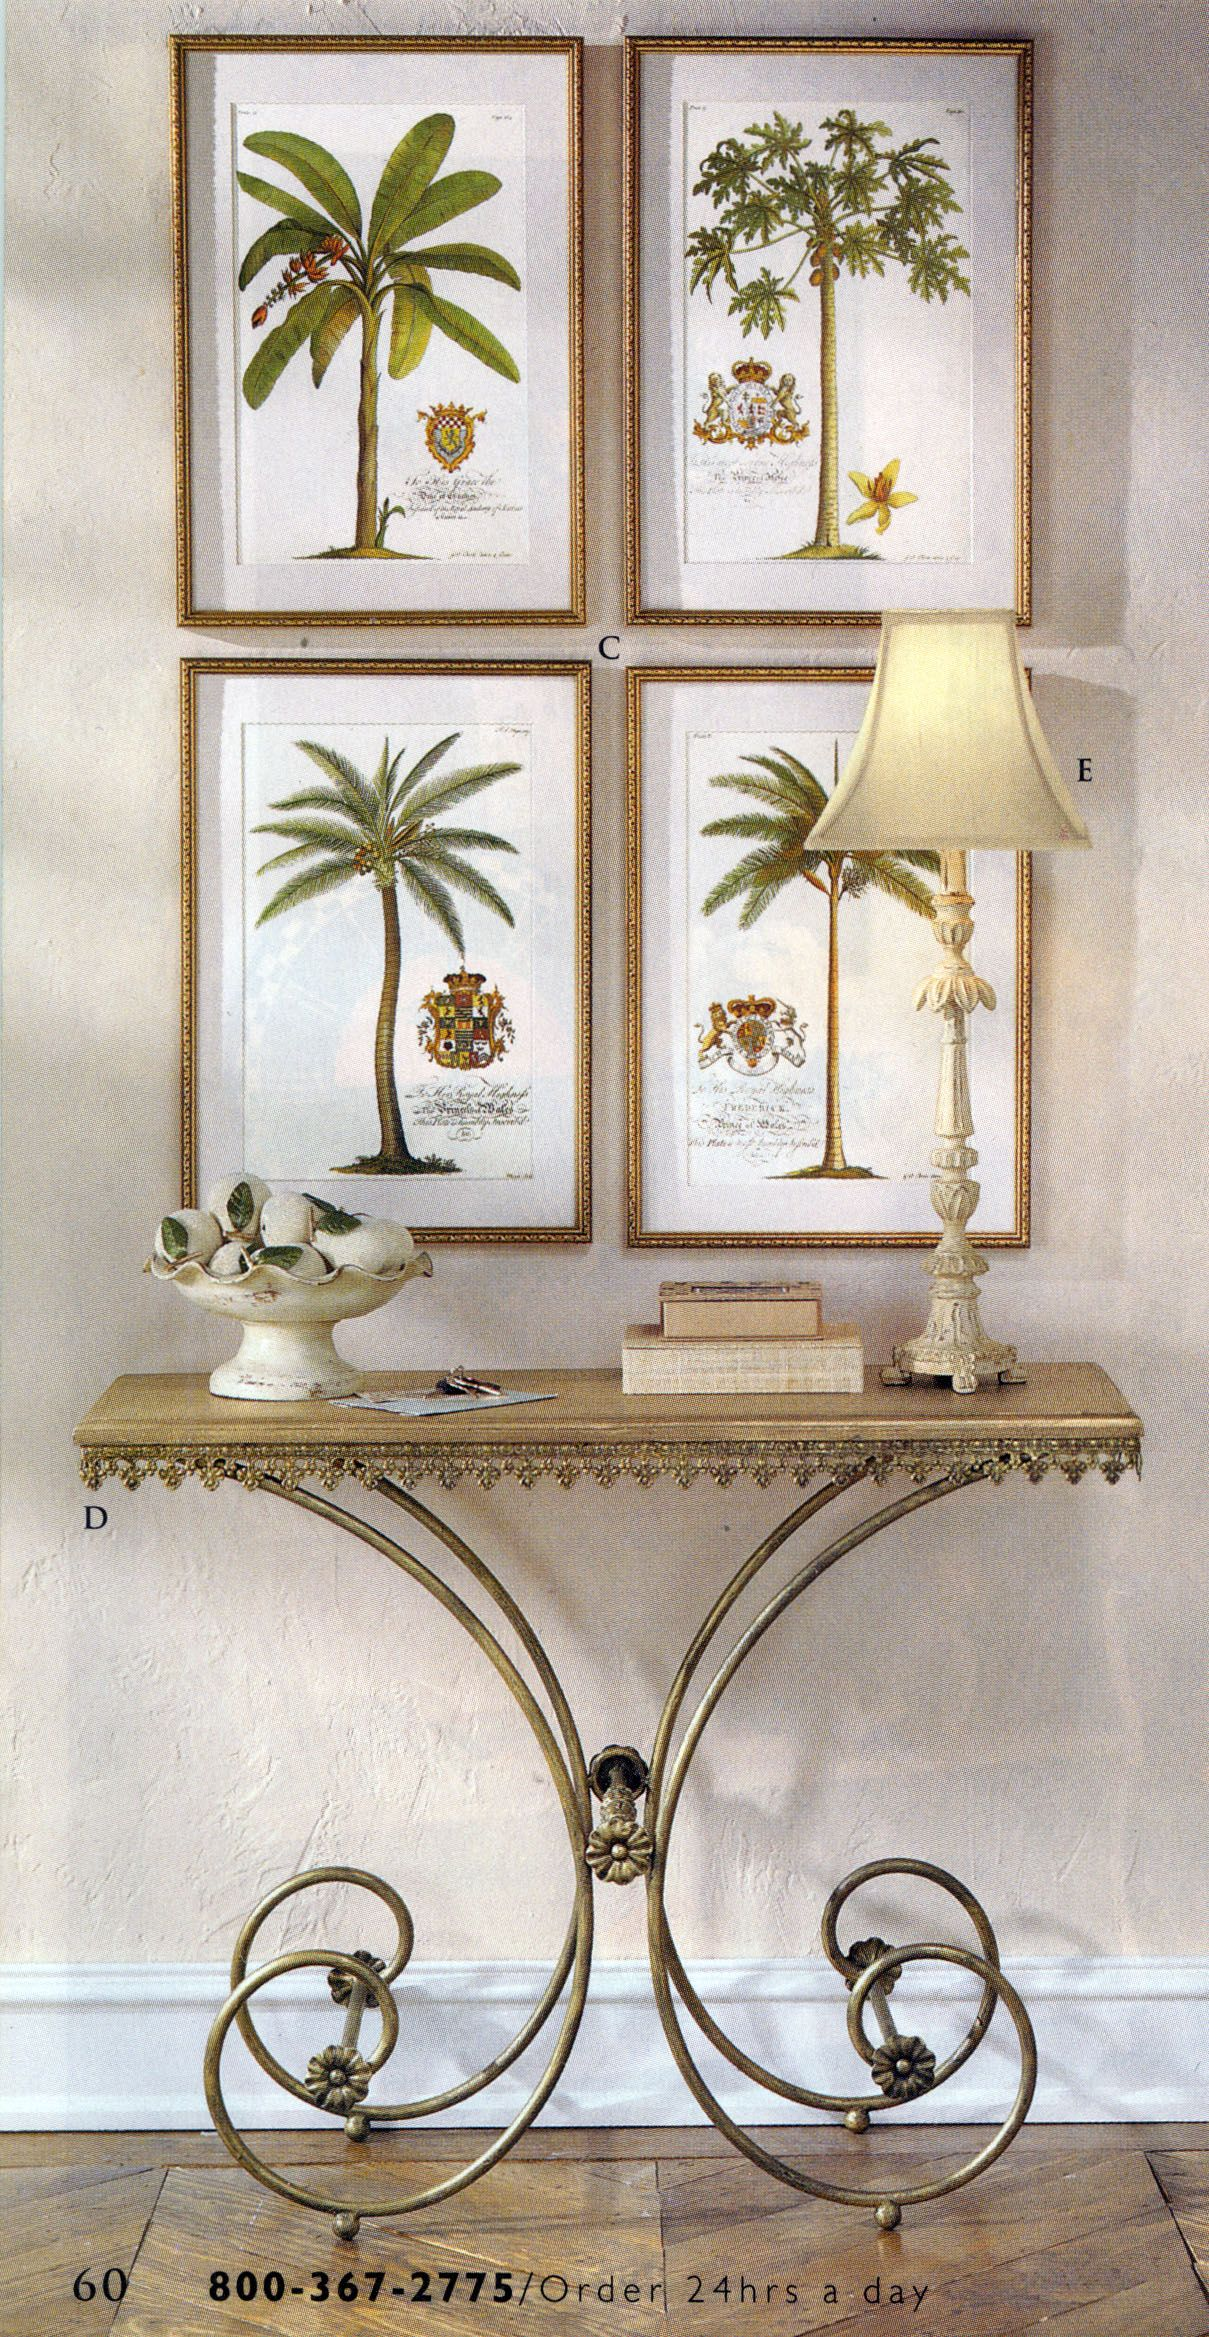 set of 4 ehret palm tree prints hanging over a console table all set of 4 ehret palm tree prints hanging over a console table all from the ballard designs catalog